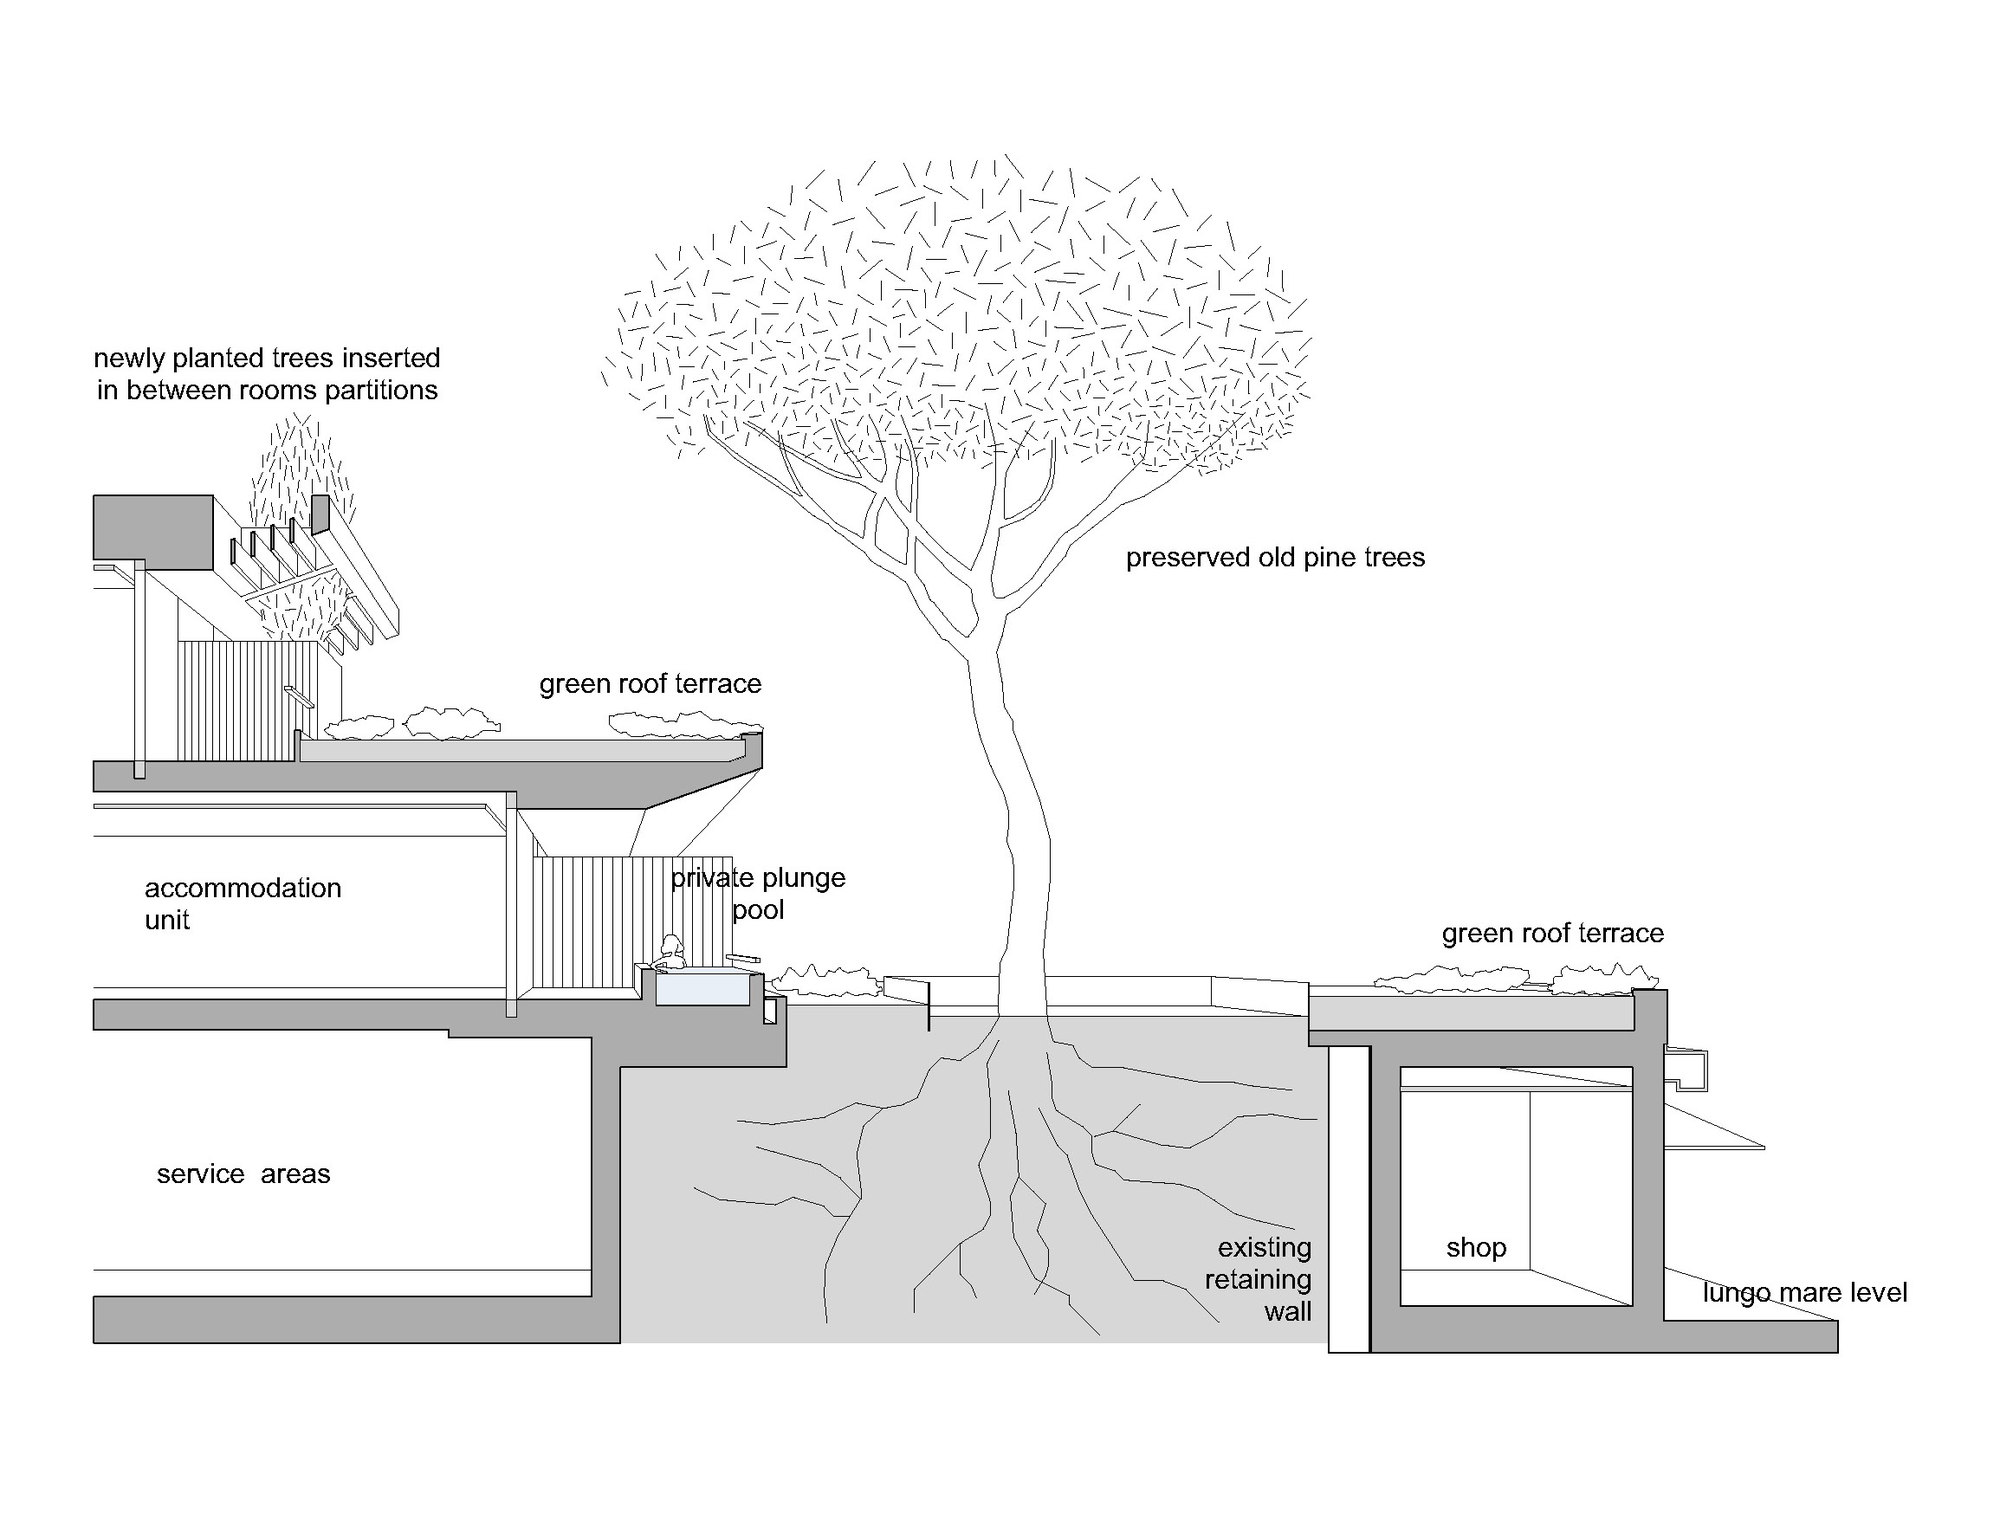 m21 _3LHD_202_GPHR_perspective_green_roof_terraces.jpg